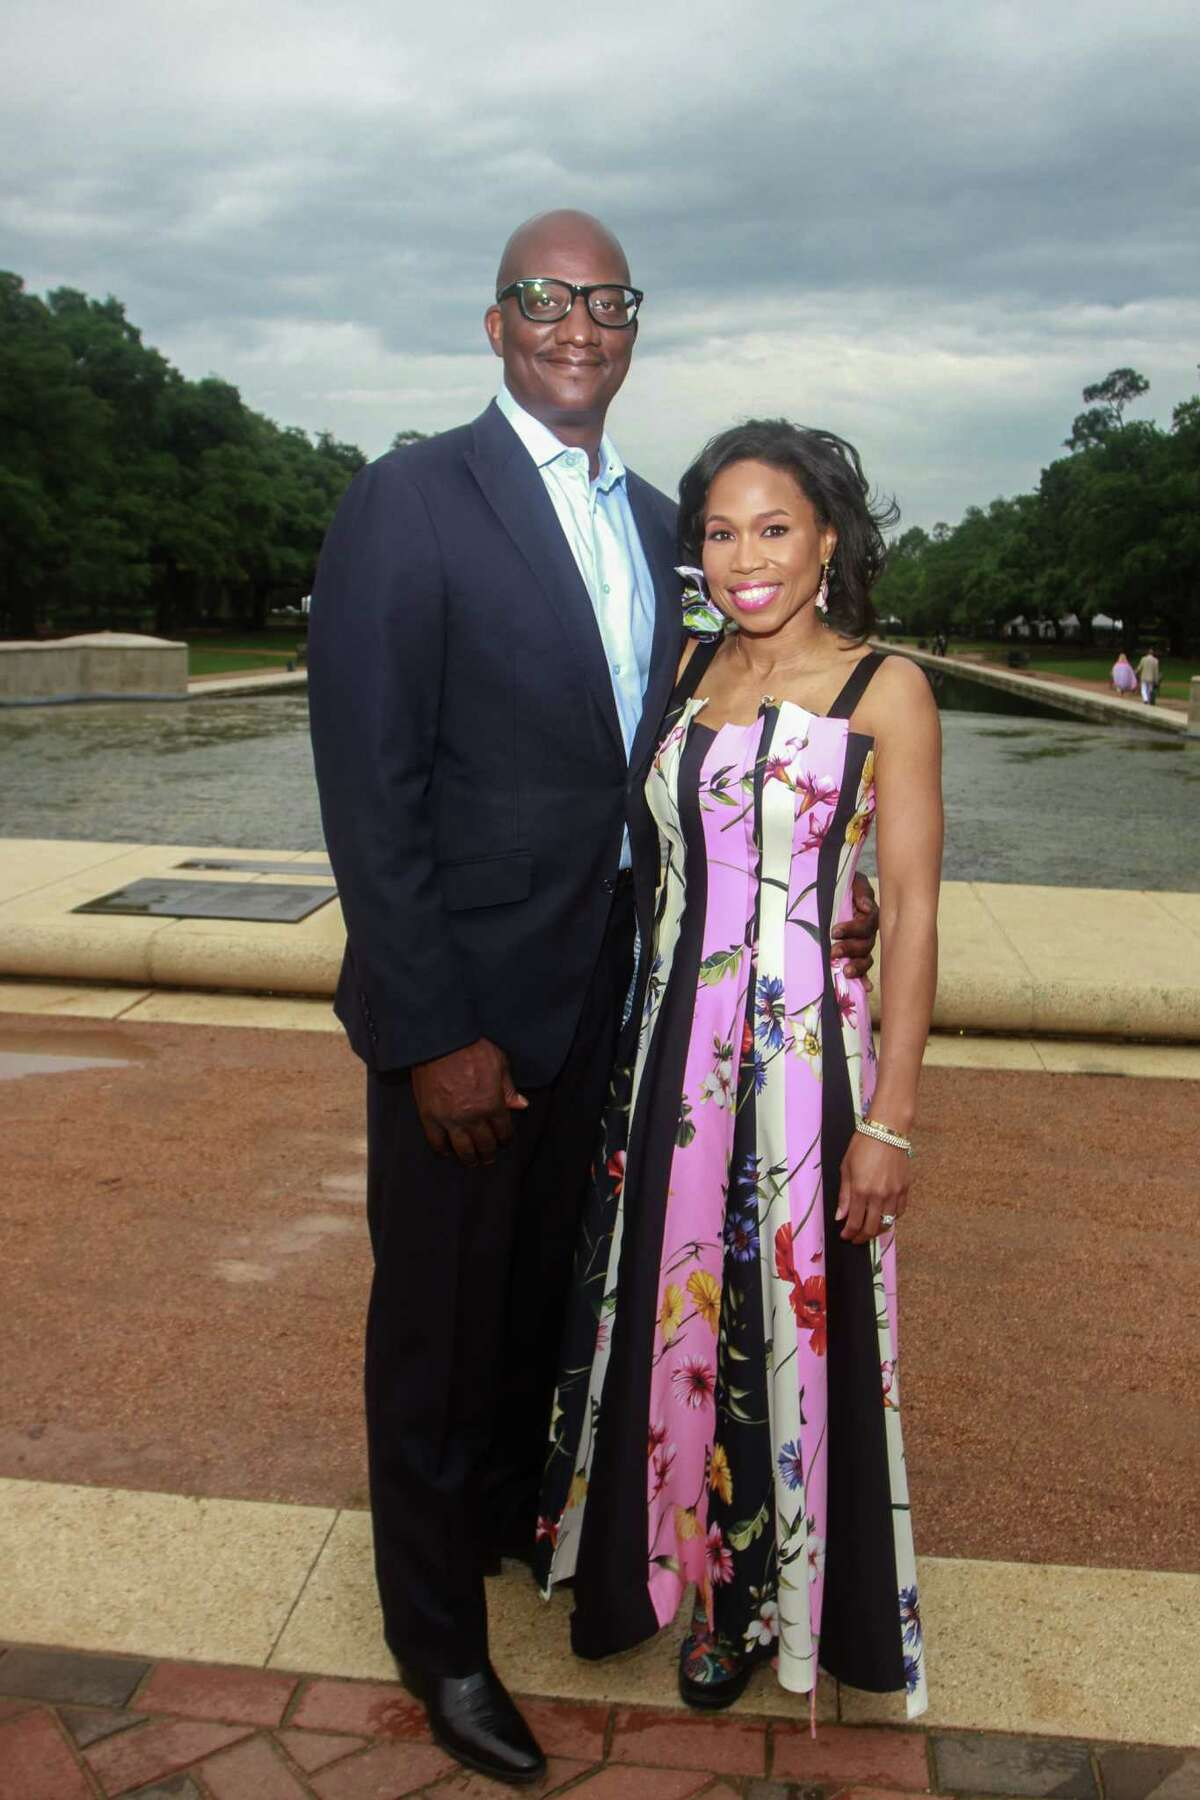 Roslyn Bazzelle Mitchell and Derrick Mitchell at Evening in the Park, hosted by the Hermann Park Conservancy, in Houston on April 30, 2021.